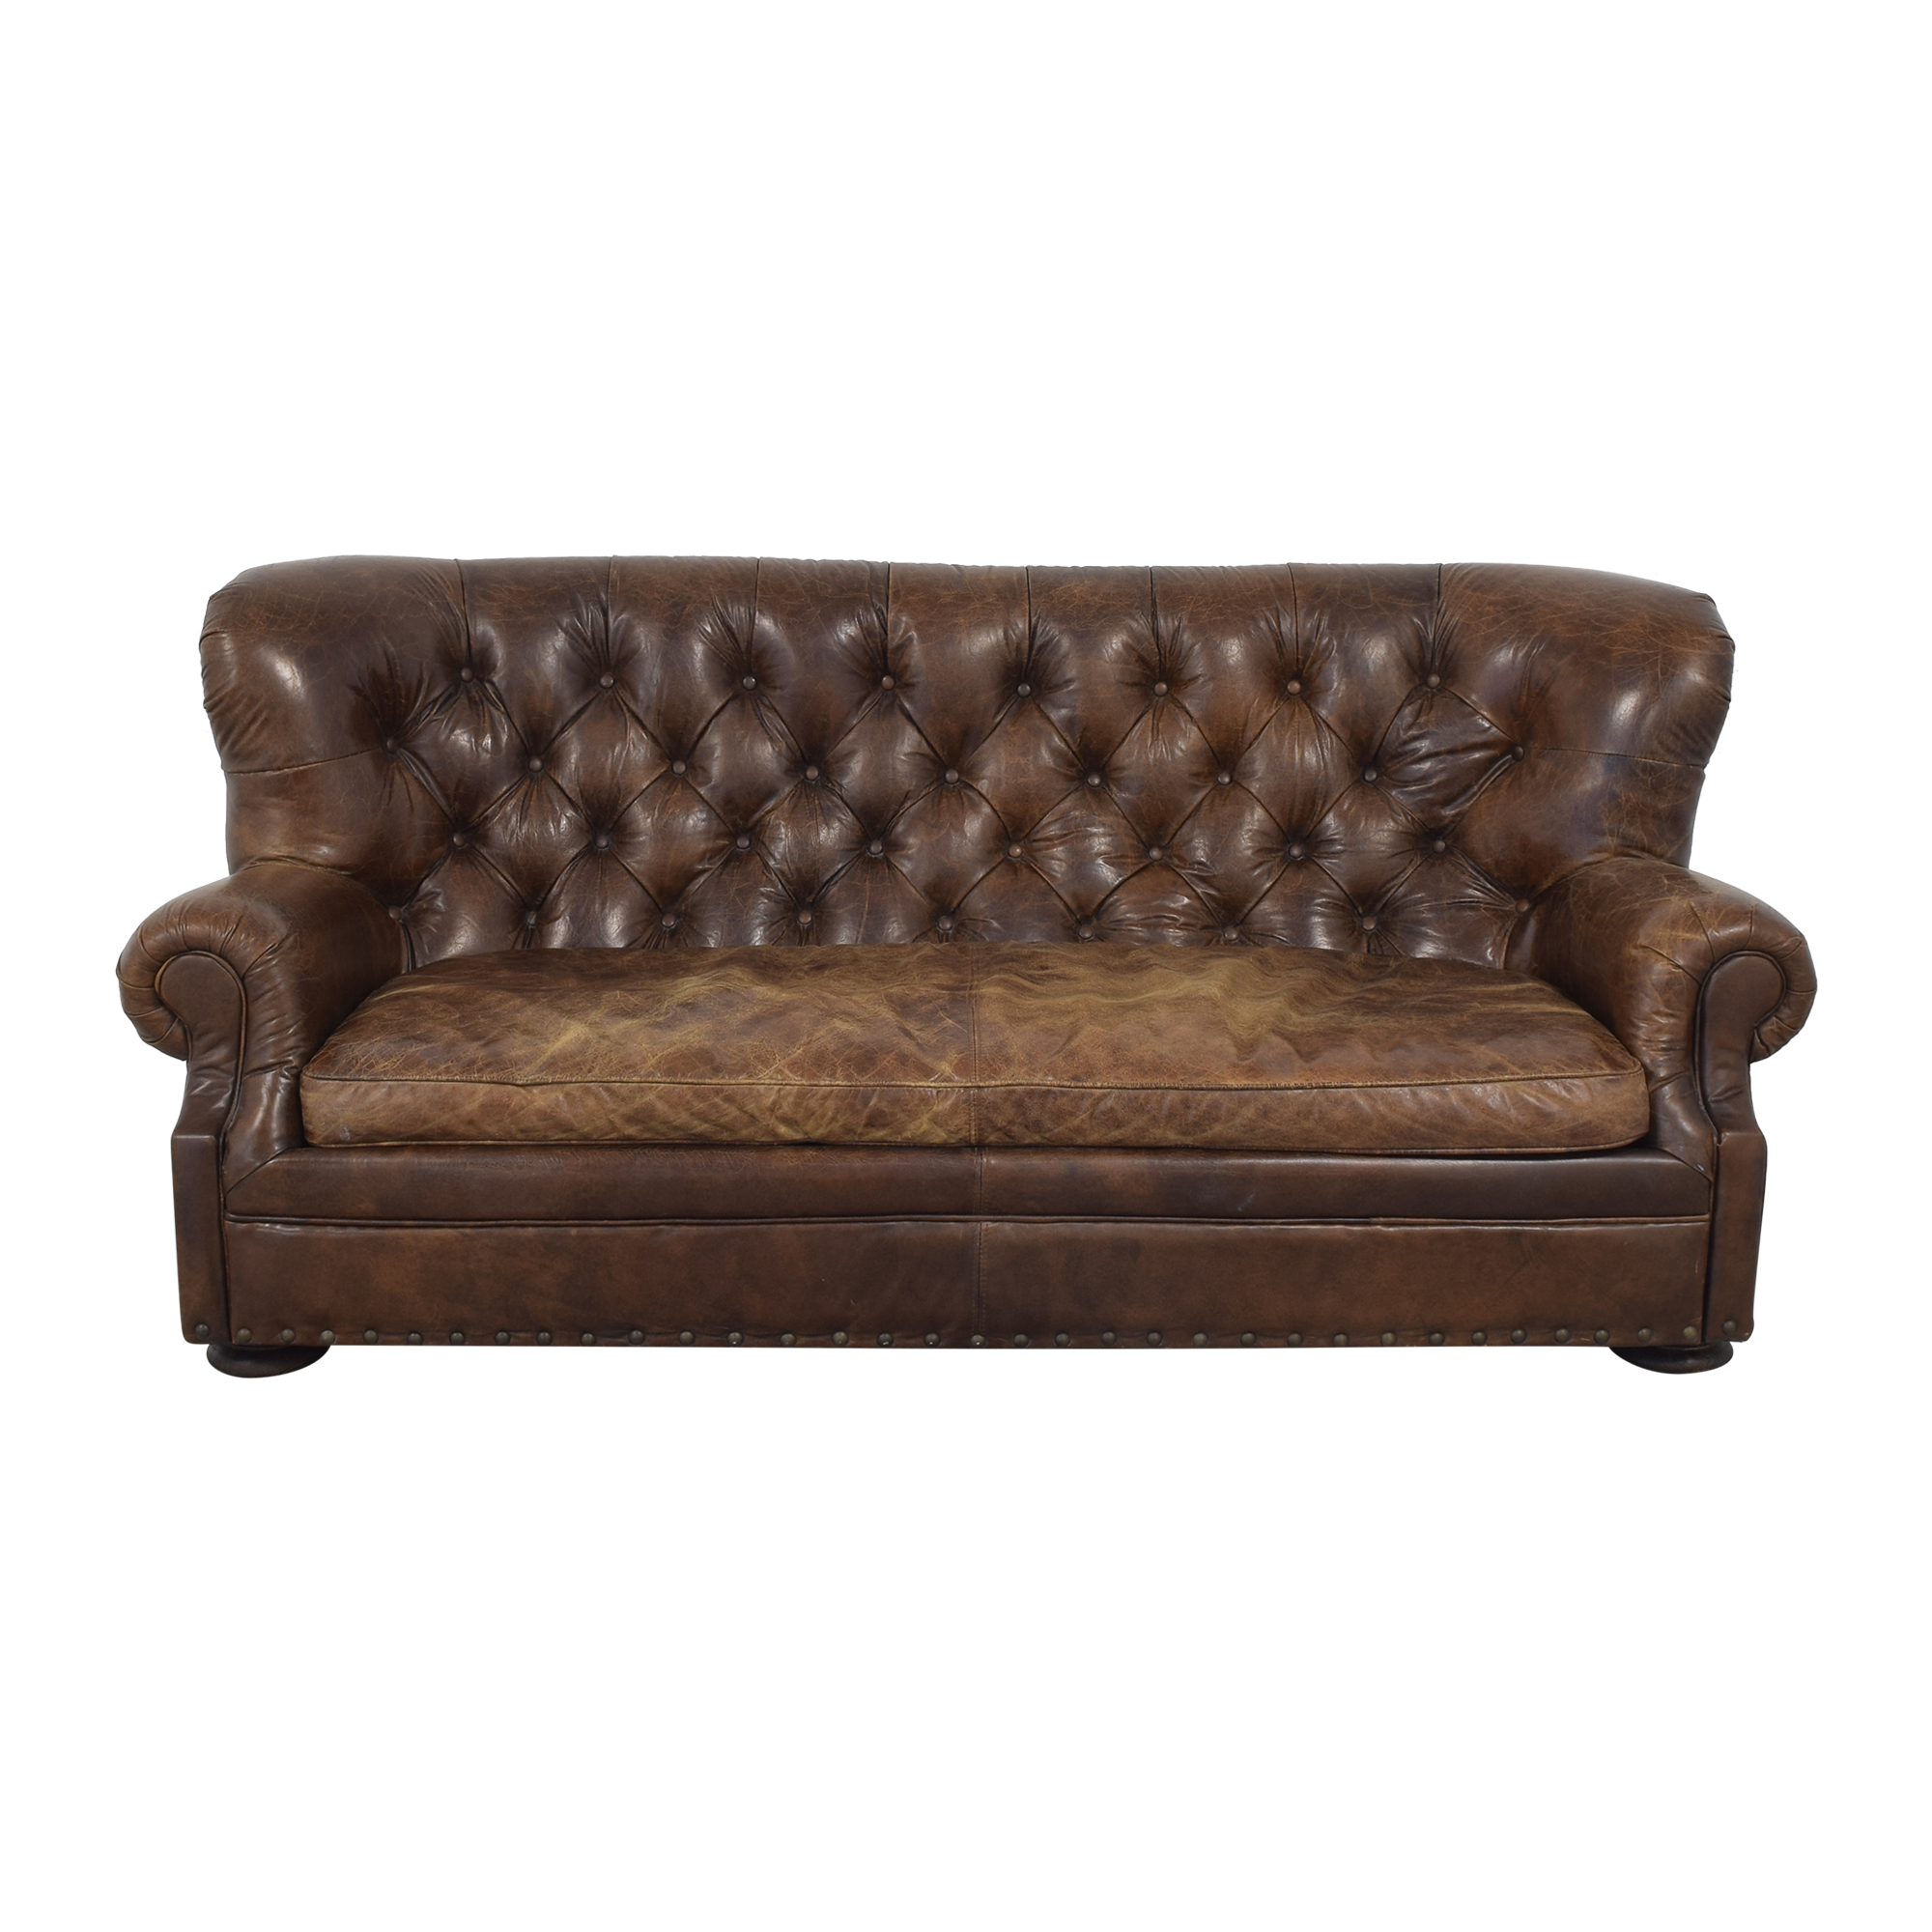 Restoration Hardware Restoration Hardware Churchill Leather Sofa pa